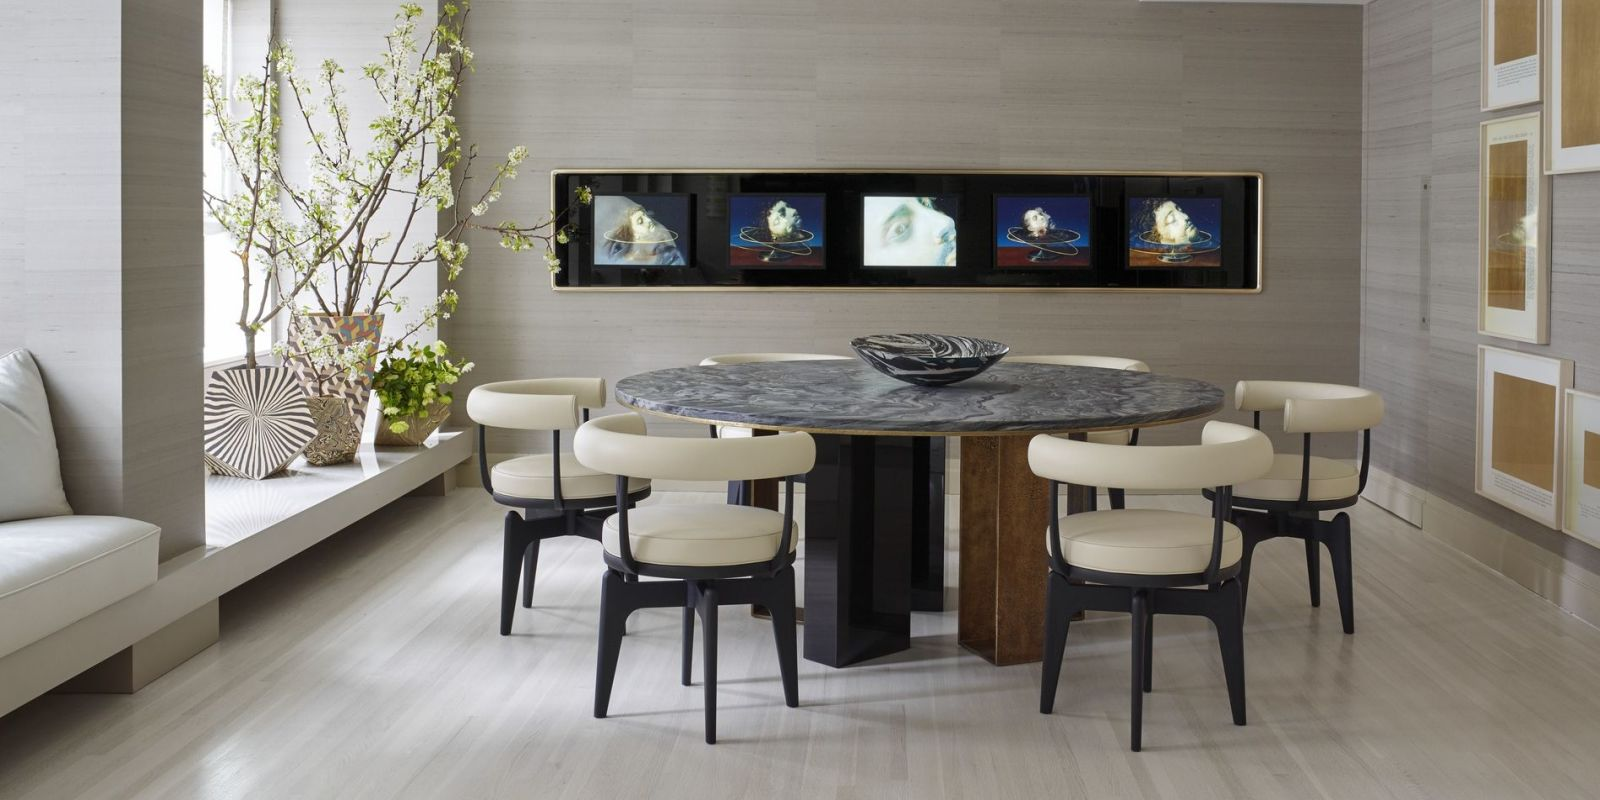 25 Modern Dining Room Decorating Ideas - Contemporary ... on Living Room Wall Sconce Ideas For Dining Area id=53009